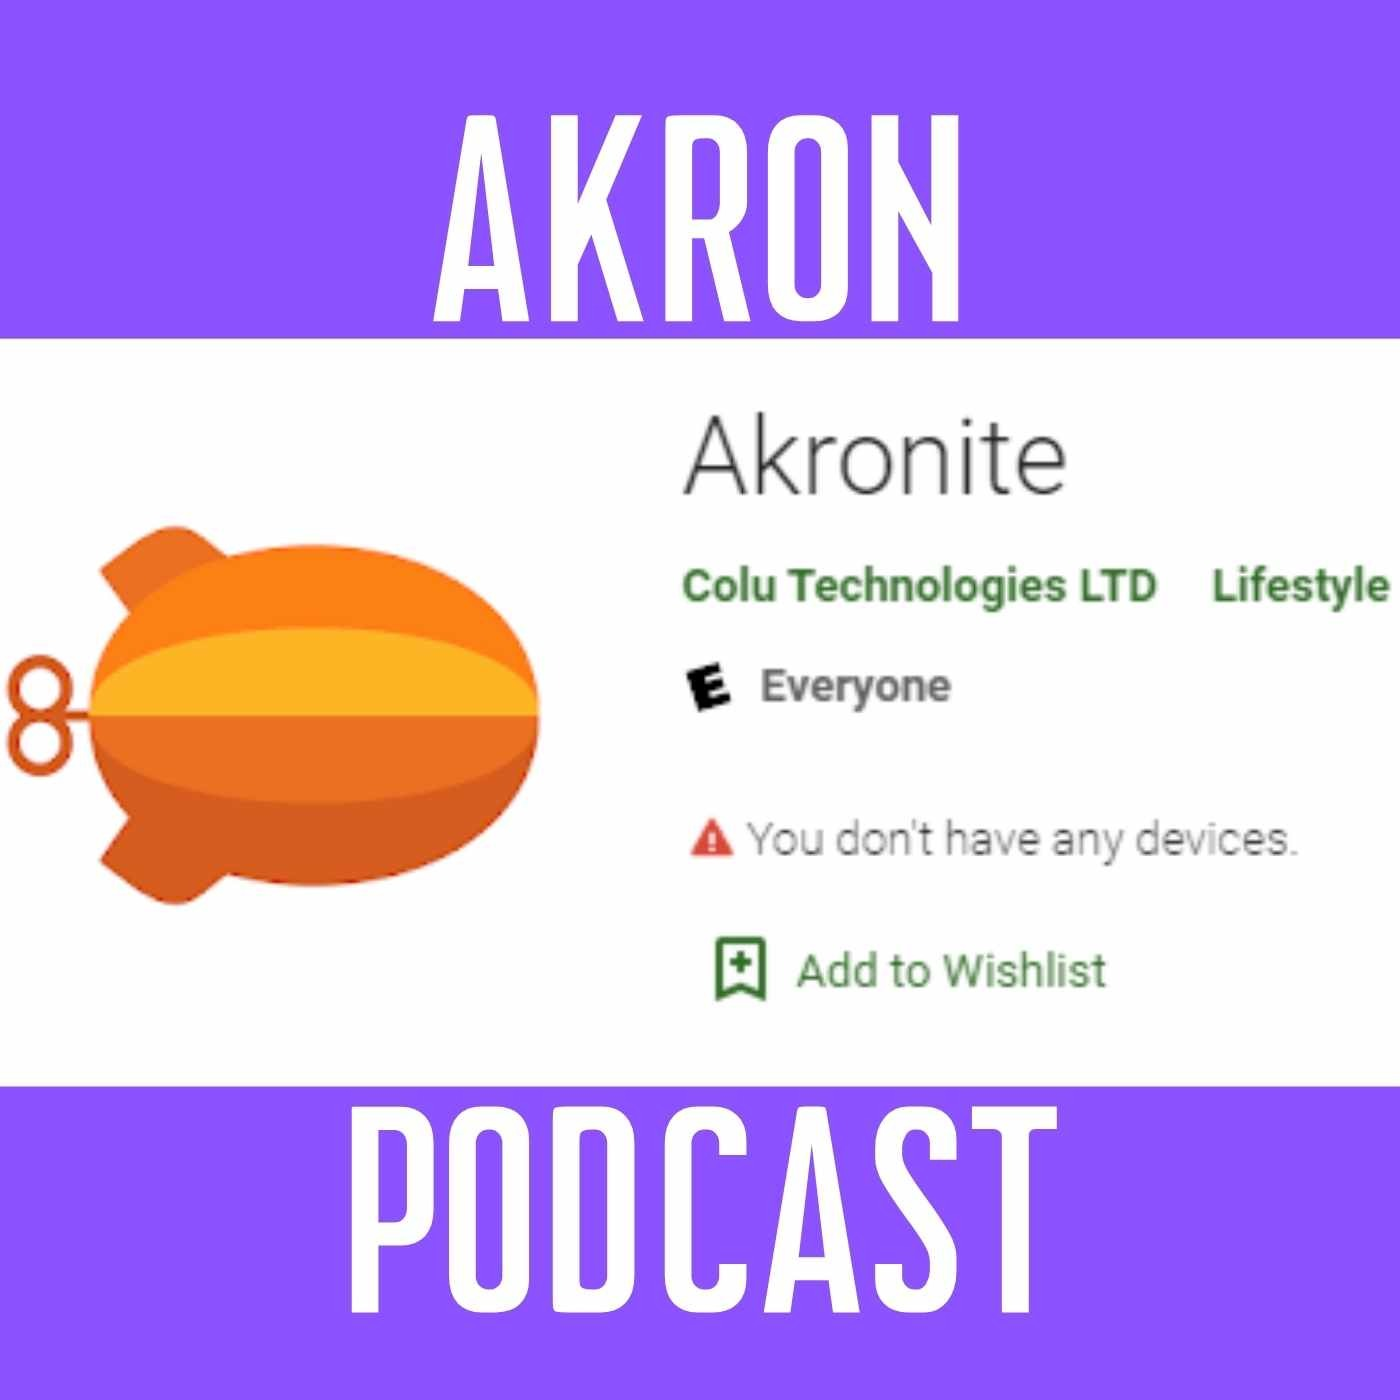 How Using the Akronite App Can Help You Save When You Shop Akron